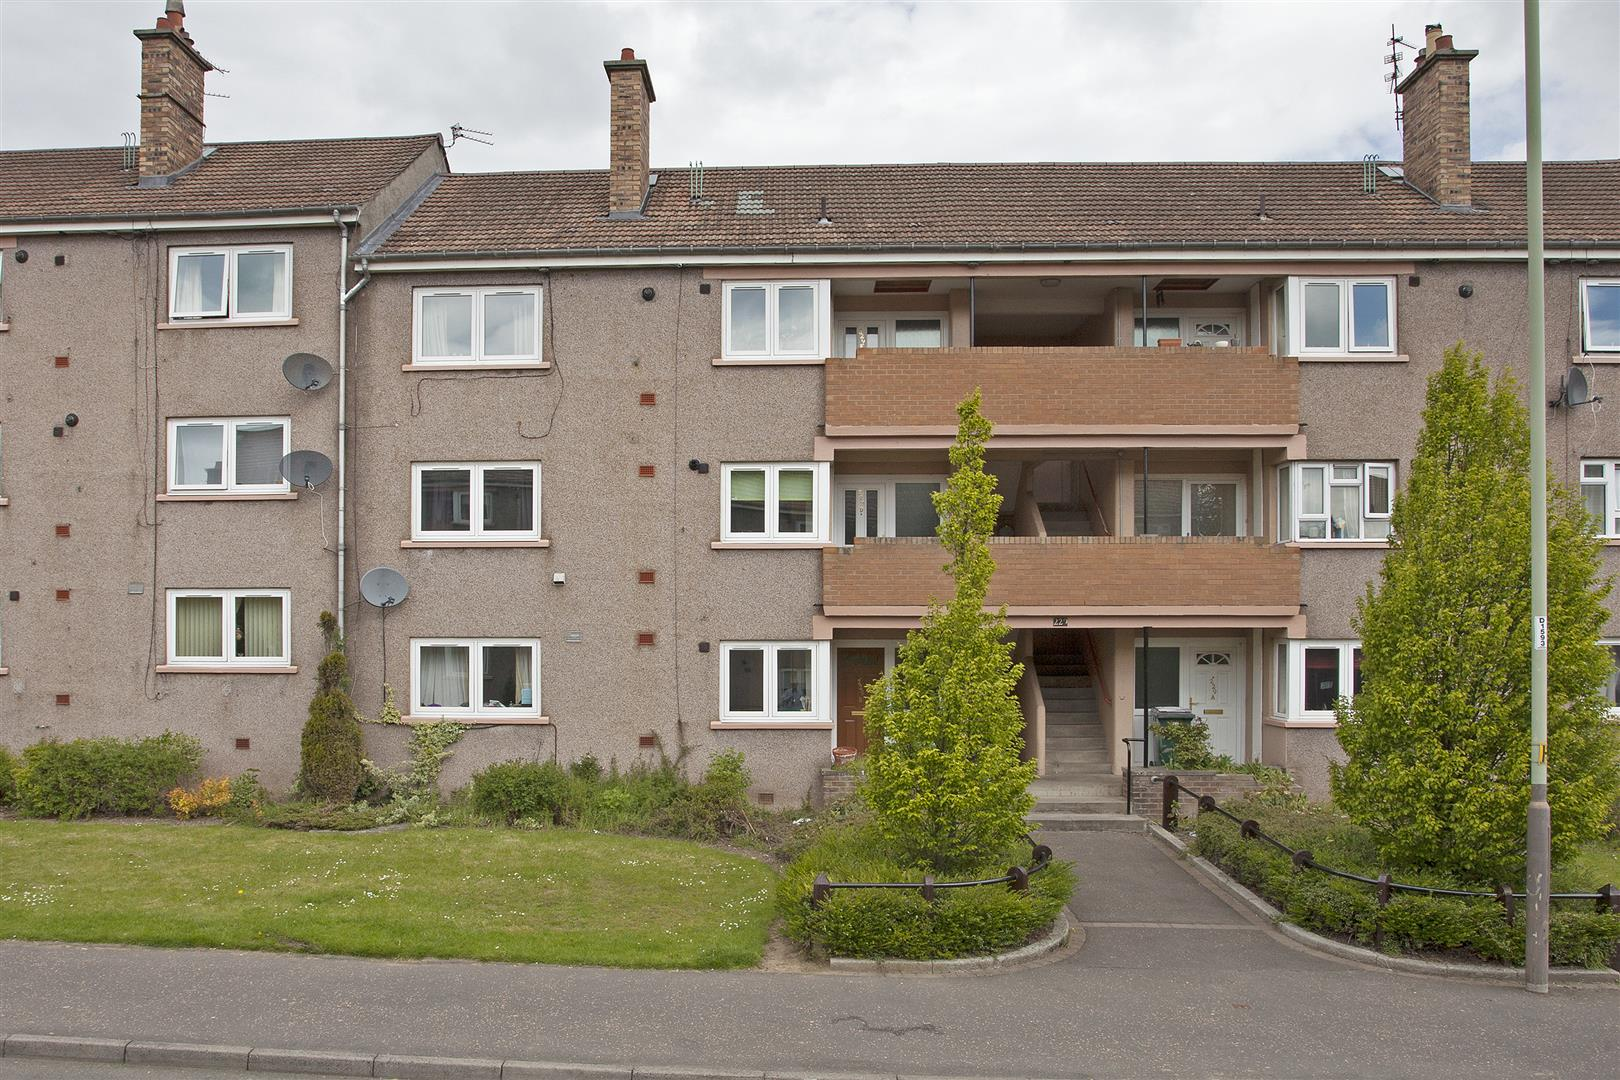 Flat D, 229, Rannoch Road, Perth, Perthshire, PH1 2DW, UK